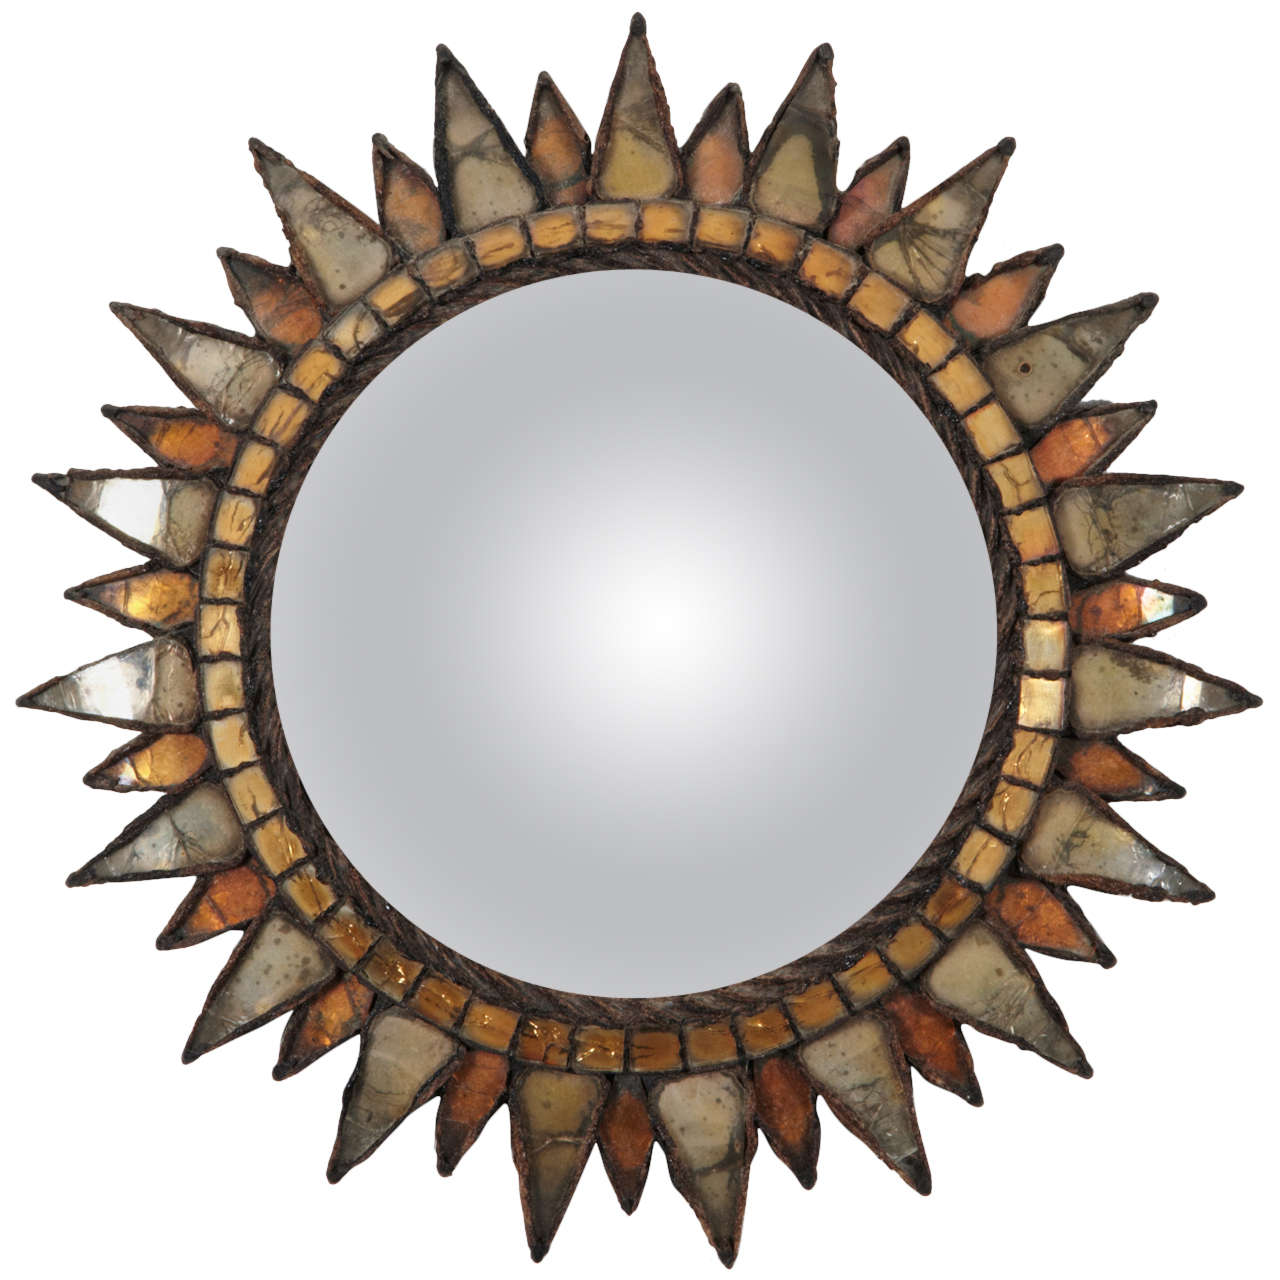 Souvent Line Vautrin Mirrors - 18 For Sale at 1stdibs TR37